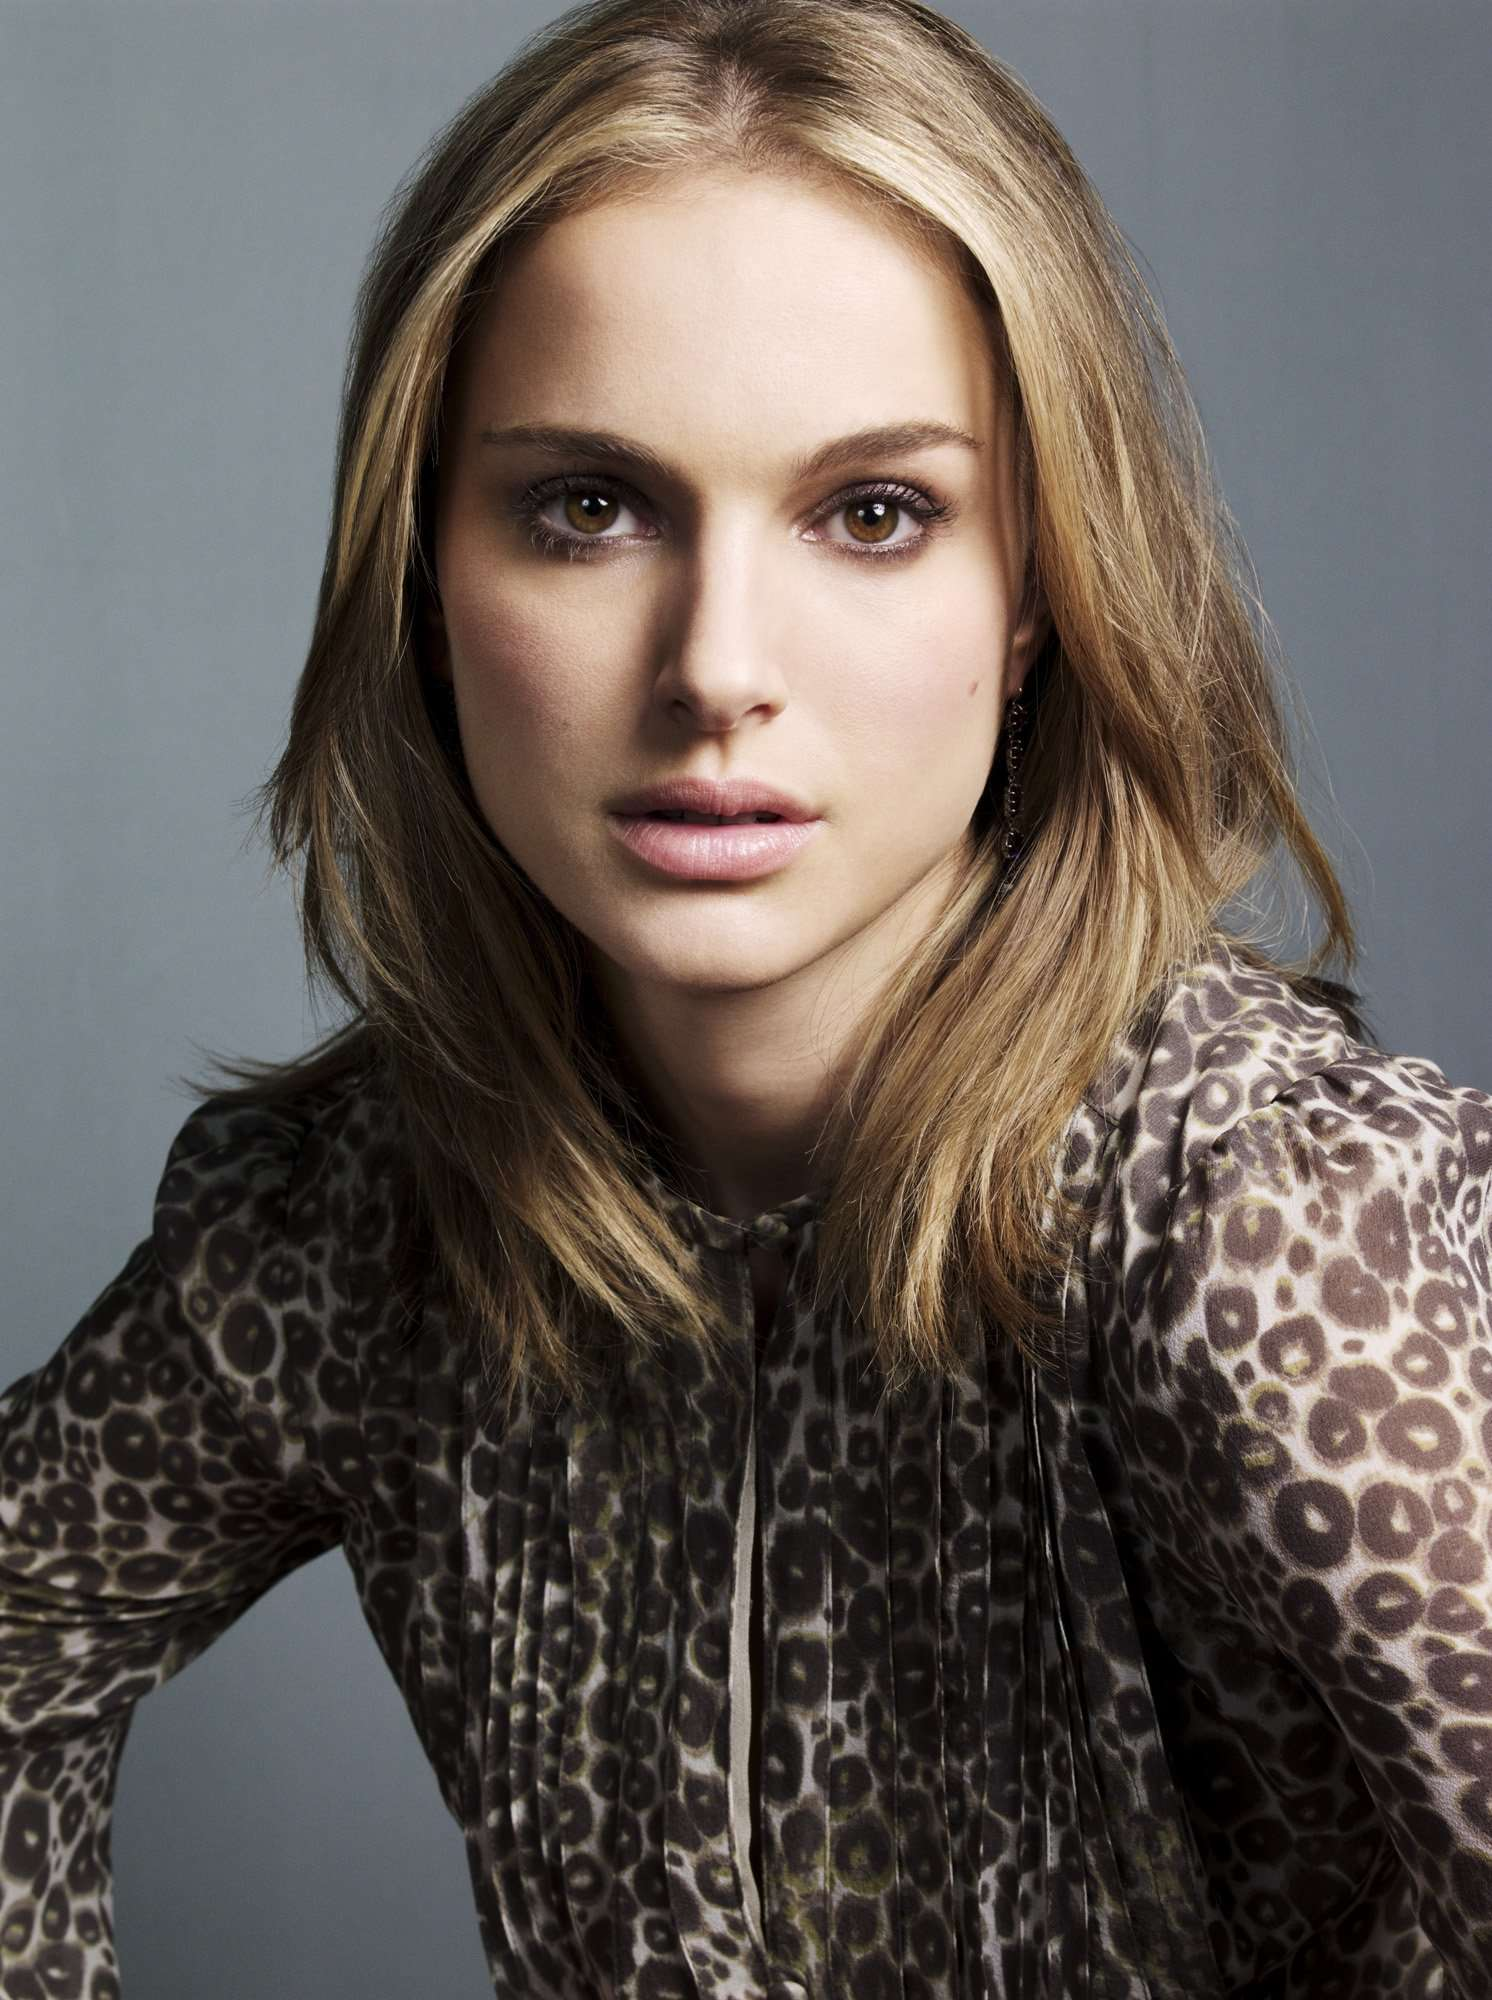 natalie portman - photo #23